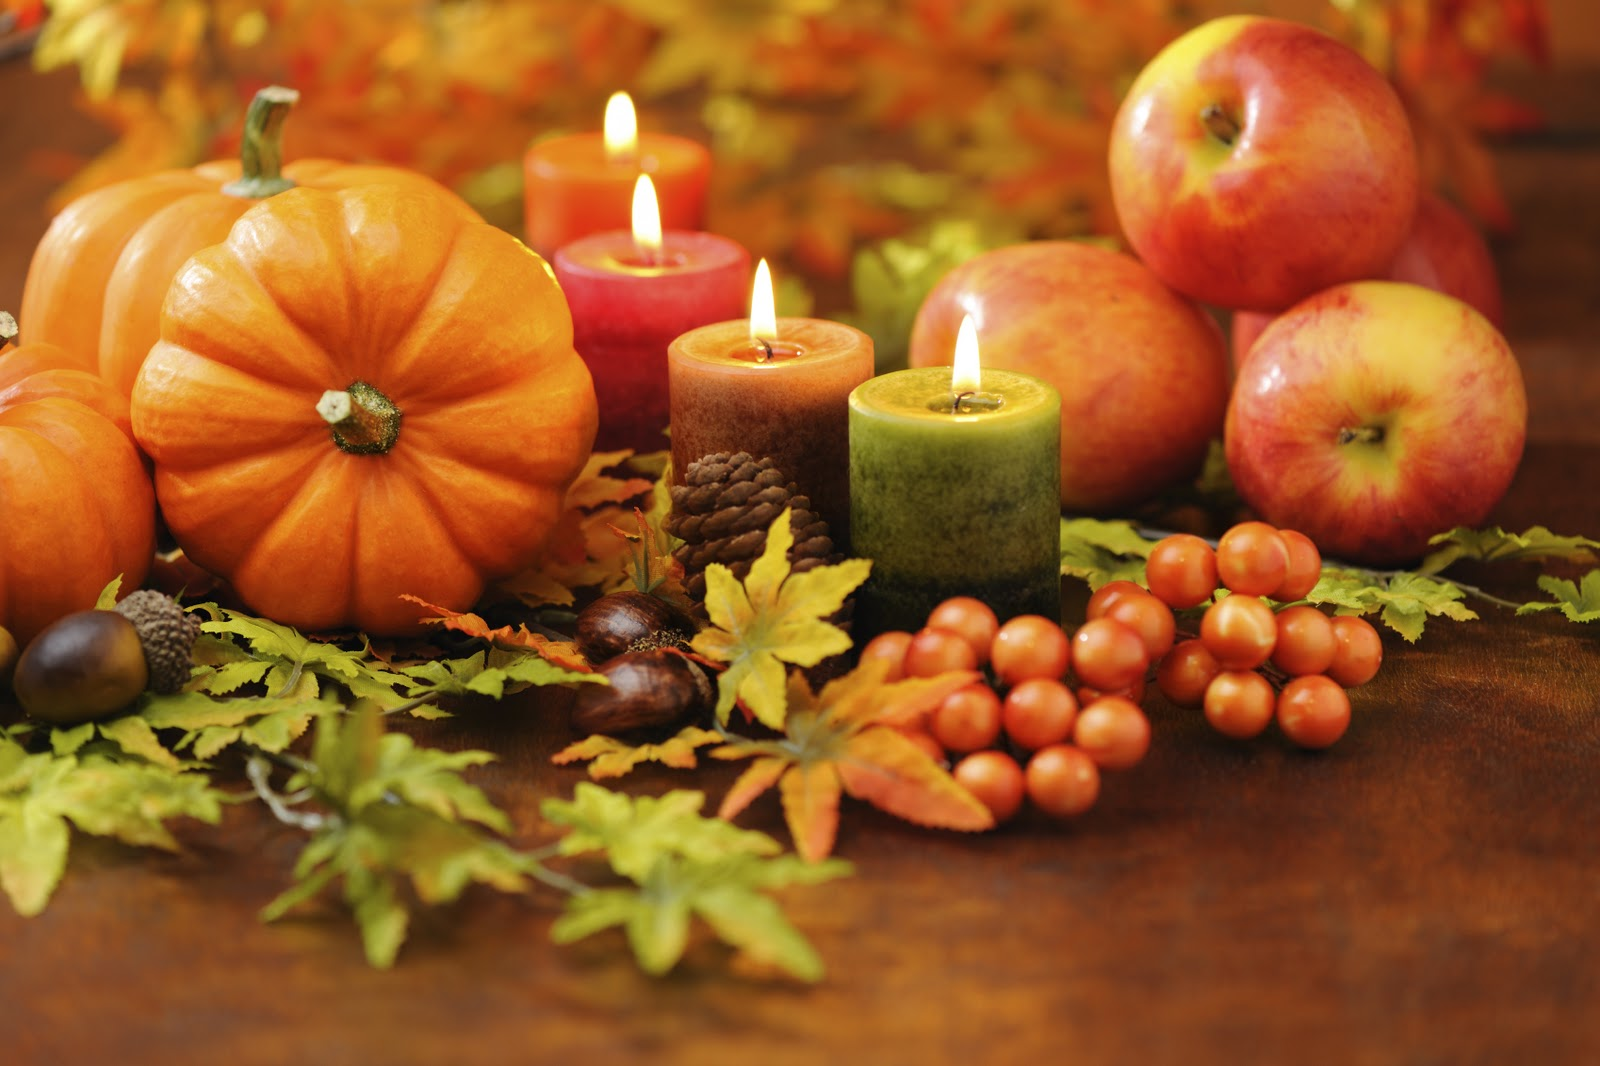 Gratitude, Fall candles, pumpkins, apples,